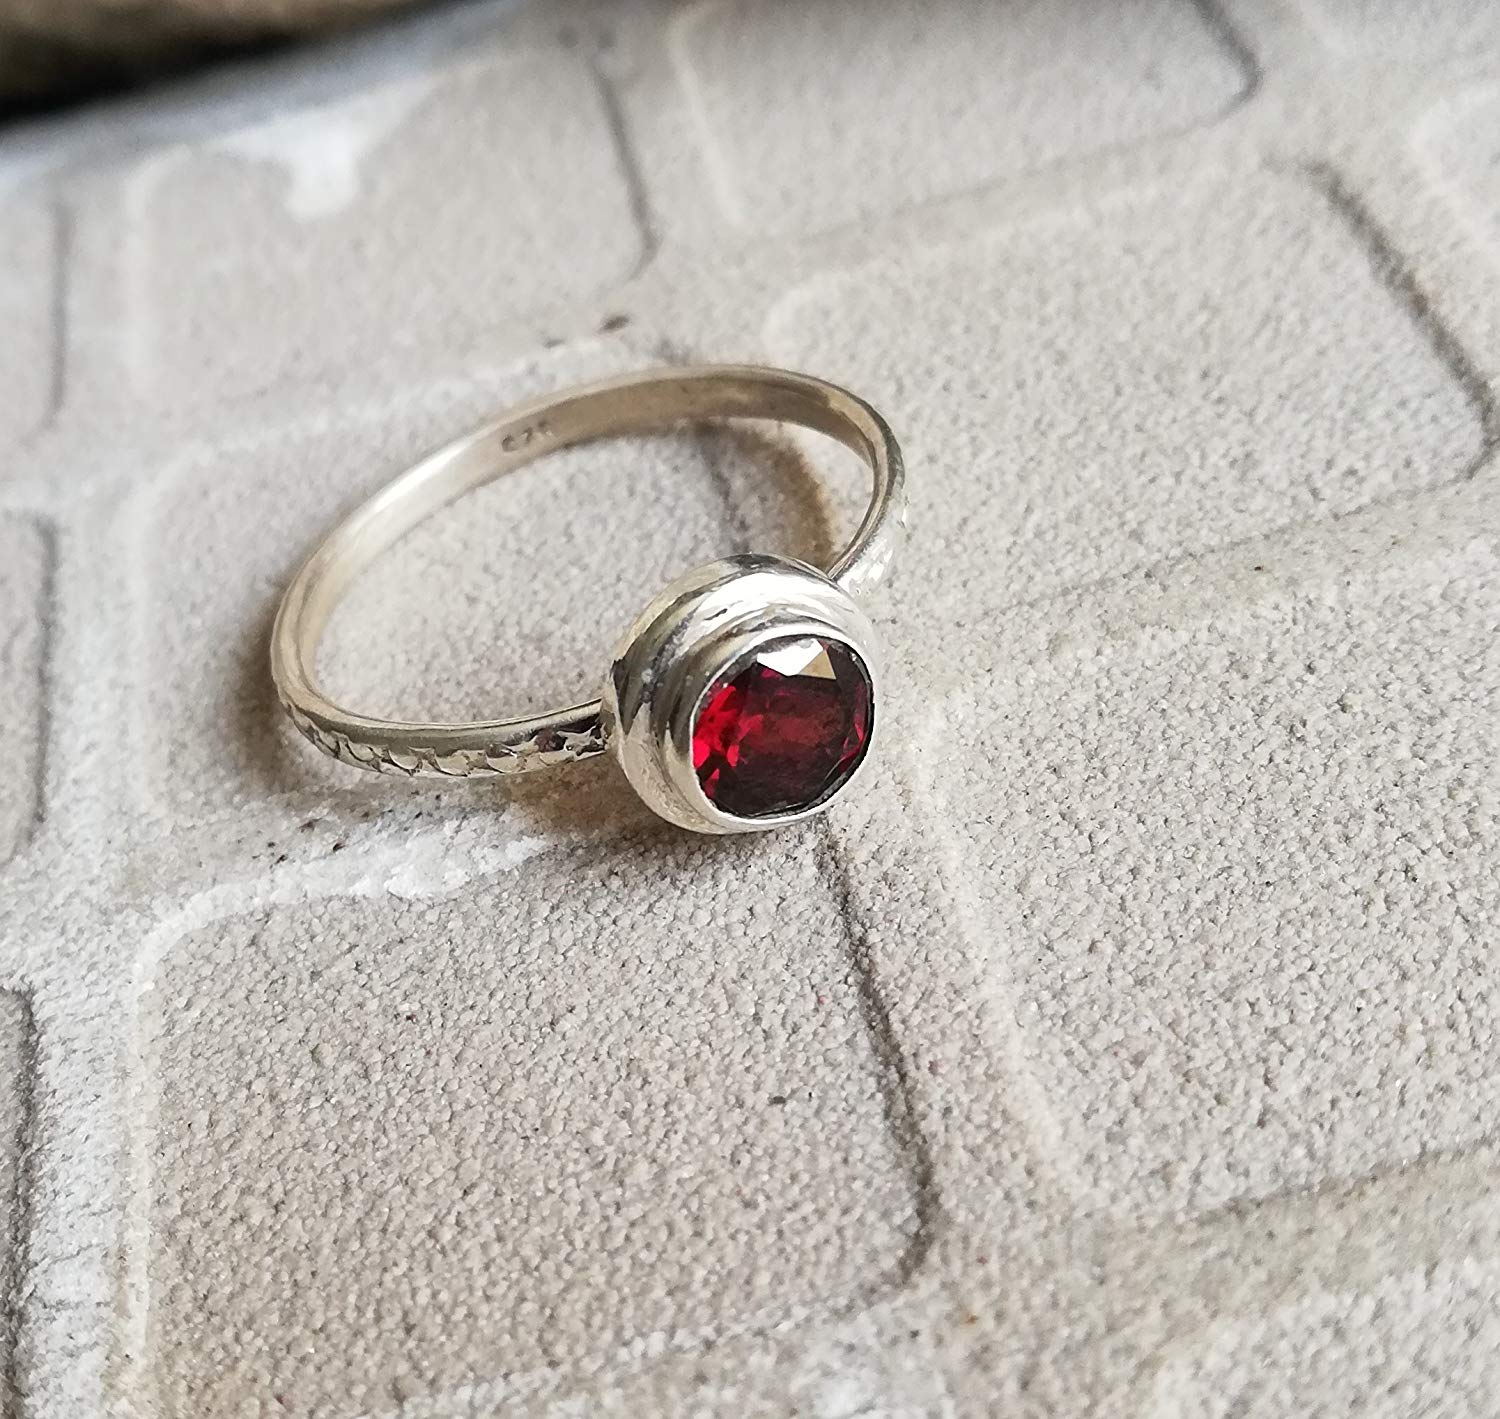 Garnet Ring, 925 Sterling Silver, Round Shape Ring, Tiny Ring, Boho Ring, Charming Ring, Bezel Ring, Any Wear Ring, Bride Ring, Healing Ring, Southwestern Ring, Red Jewelry, Gypsy, US All Size Ring